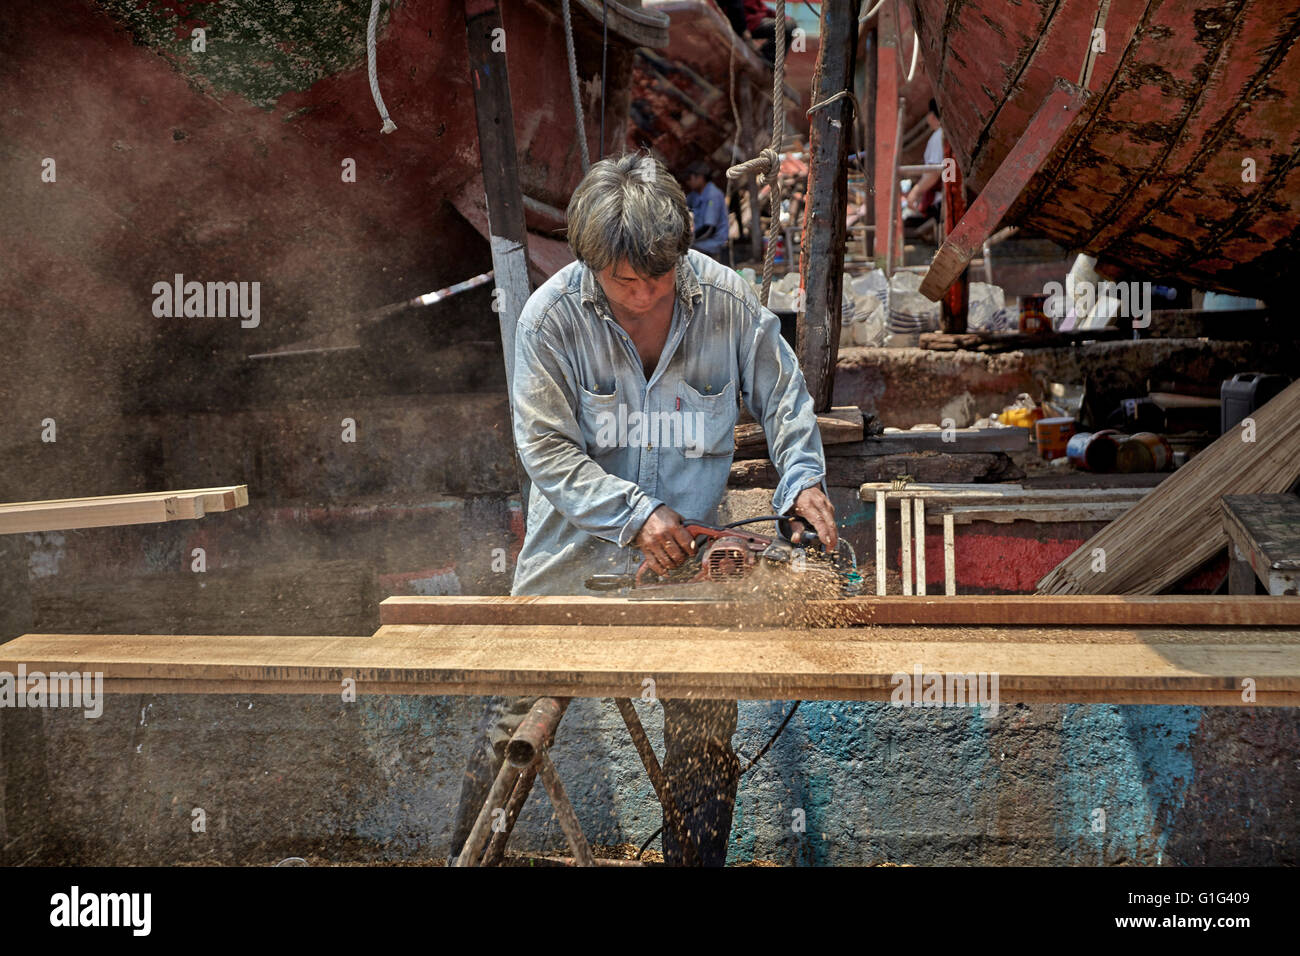 Carpenter working with wood using a power  tool. - Stock Image